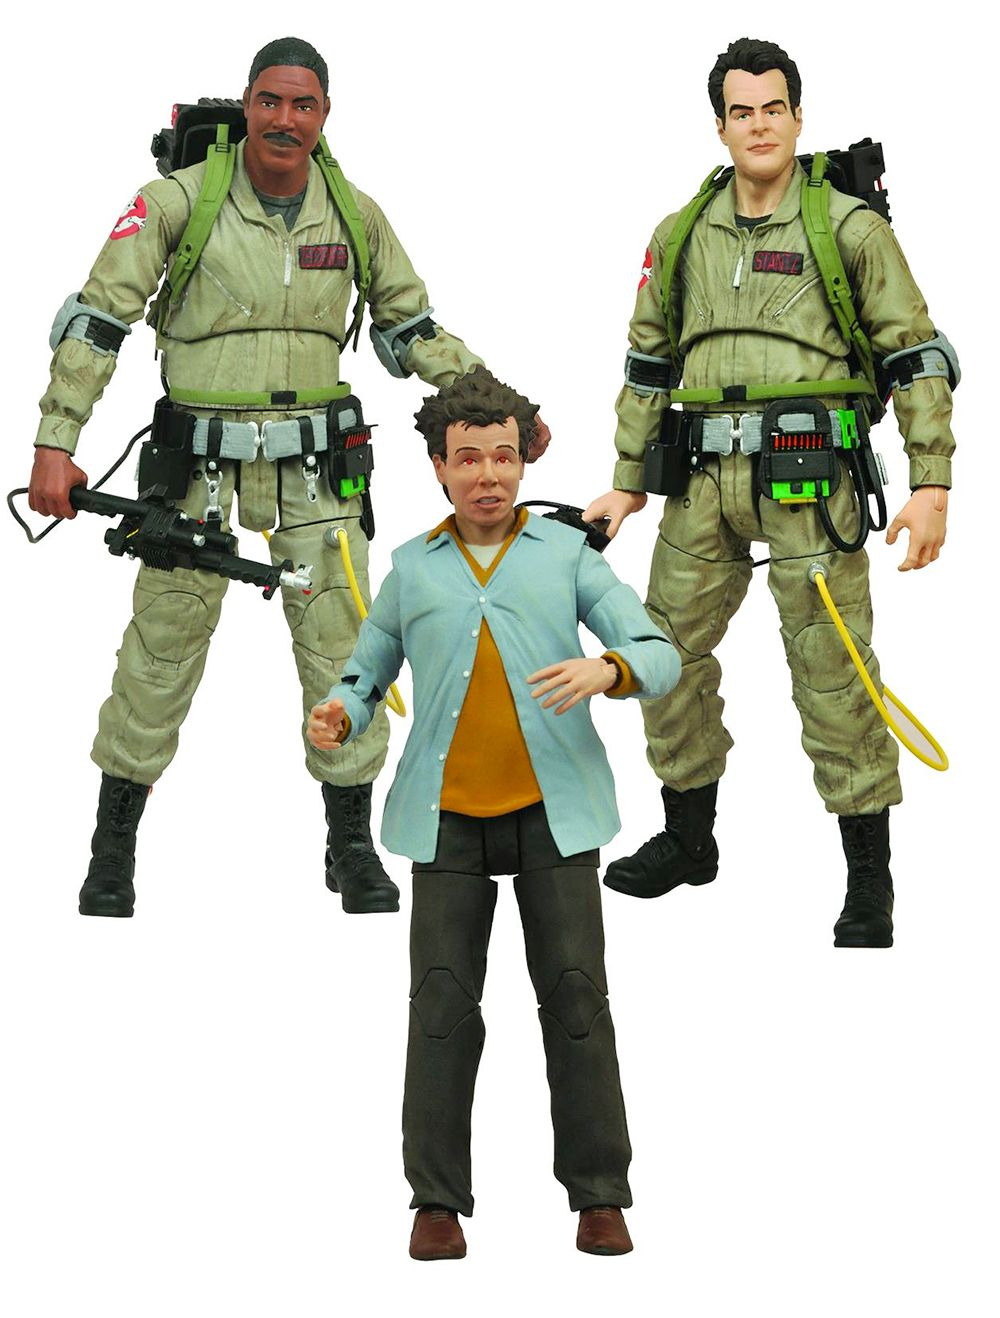 Ghostbusters Select Series 1 Action Figures